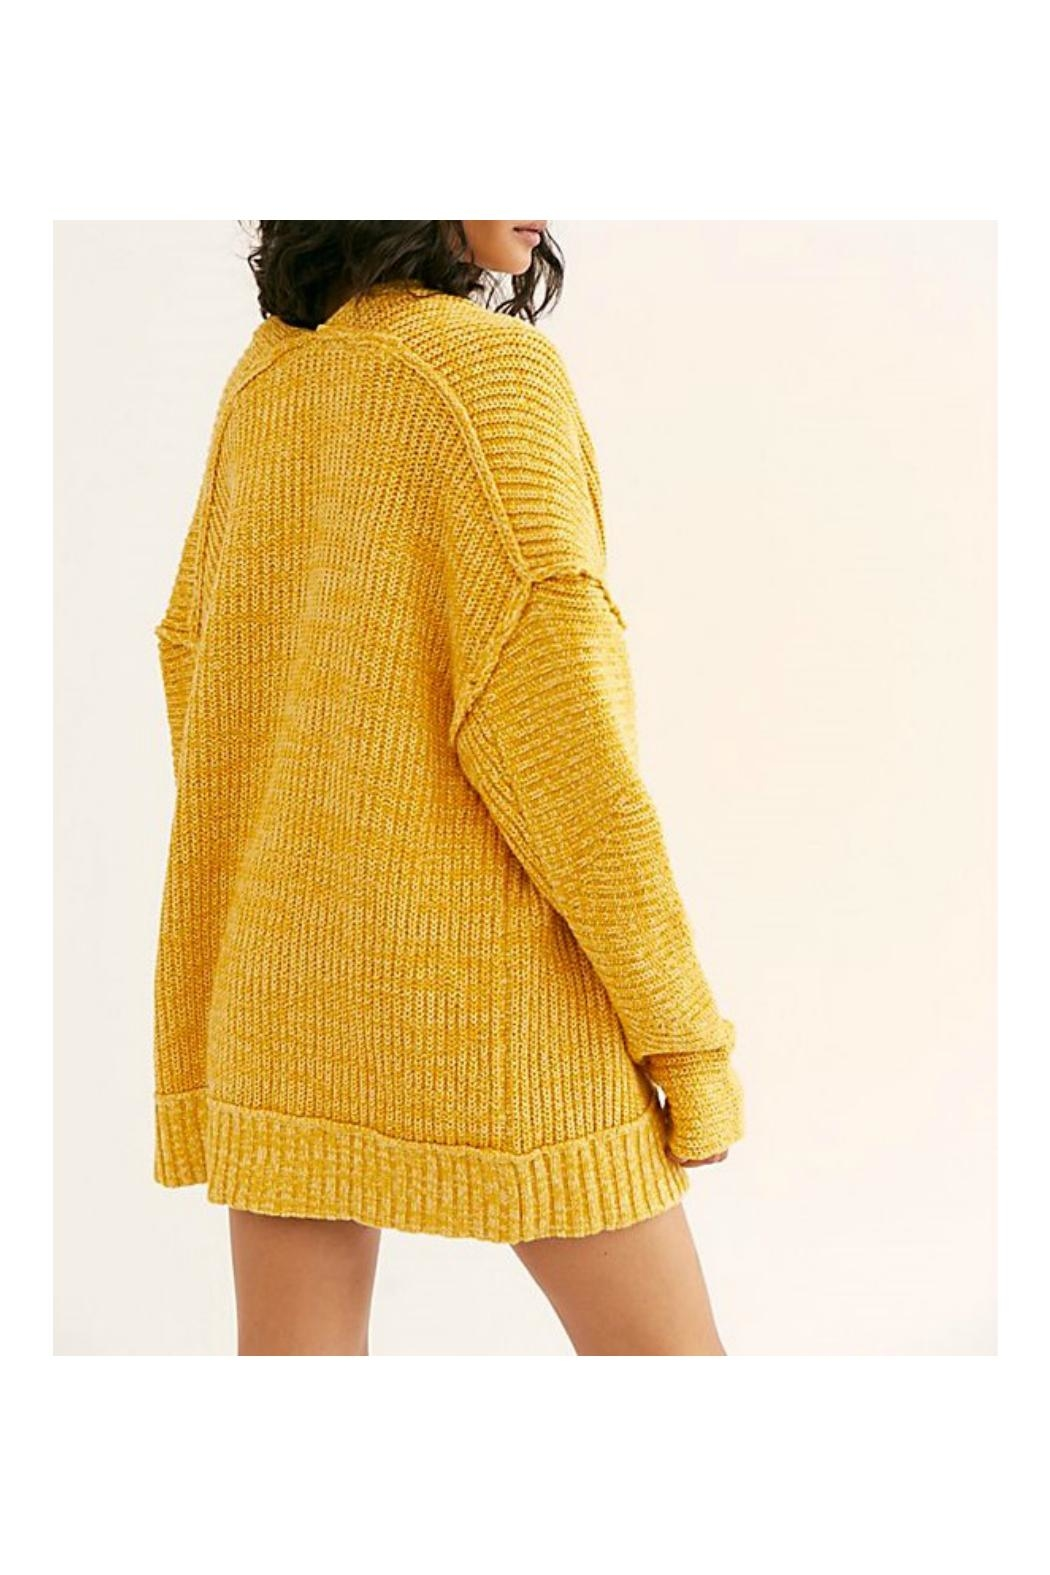 Free People Chunky Cardi Sweater - Front Full Image